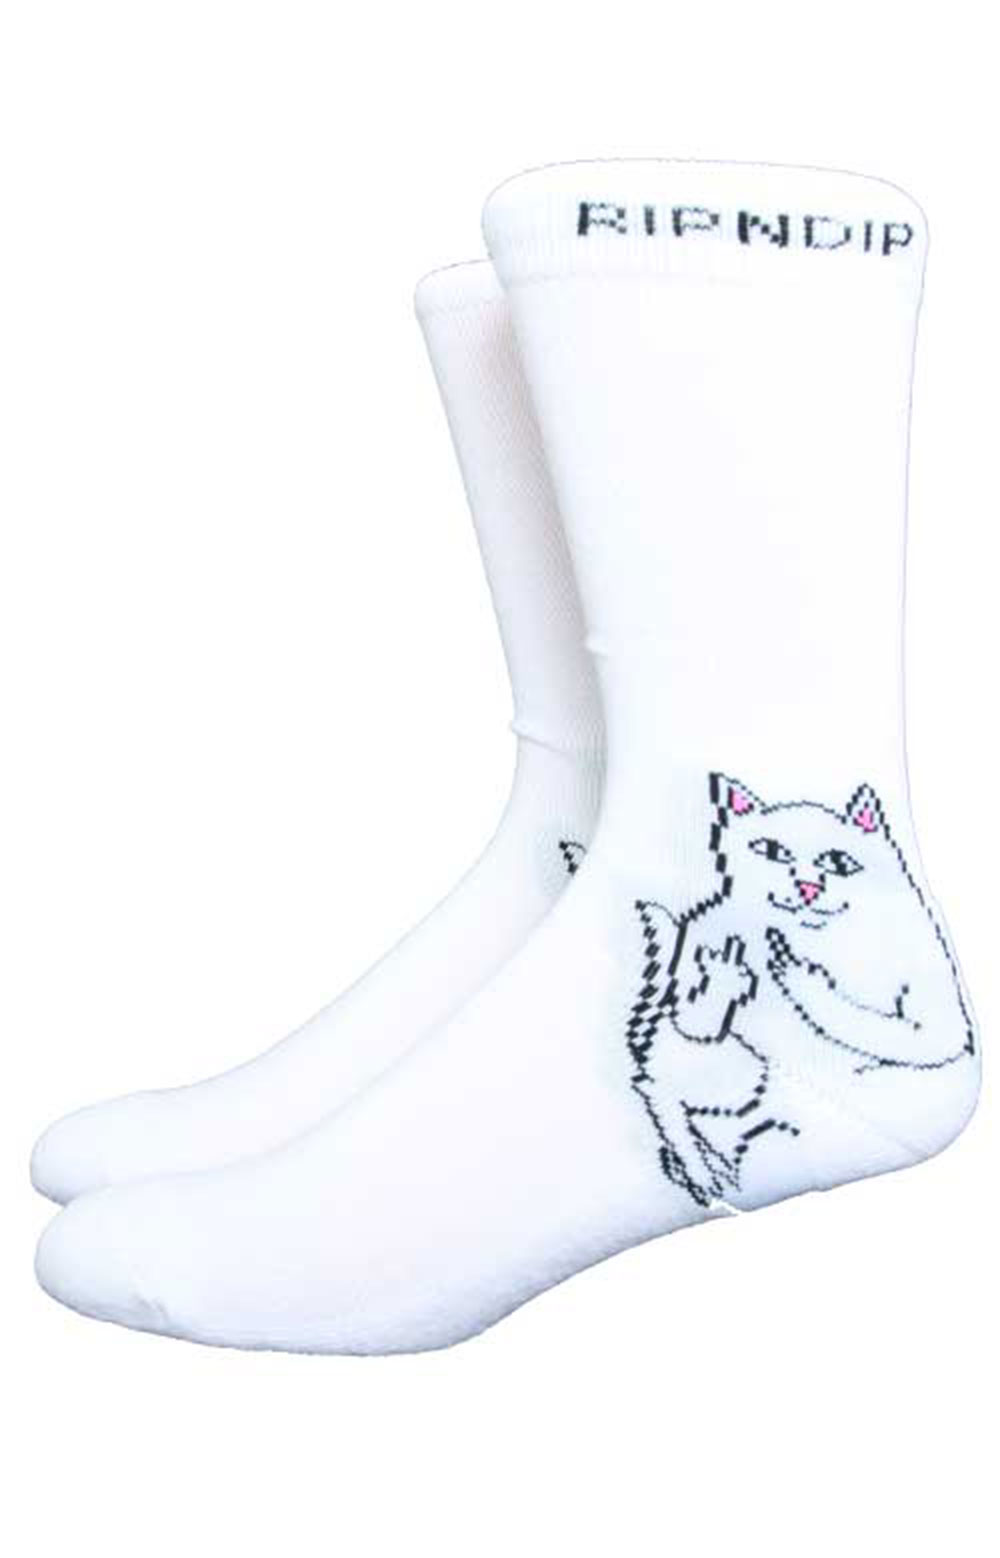 Lord Nermal Socks - White